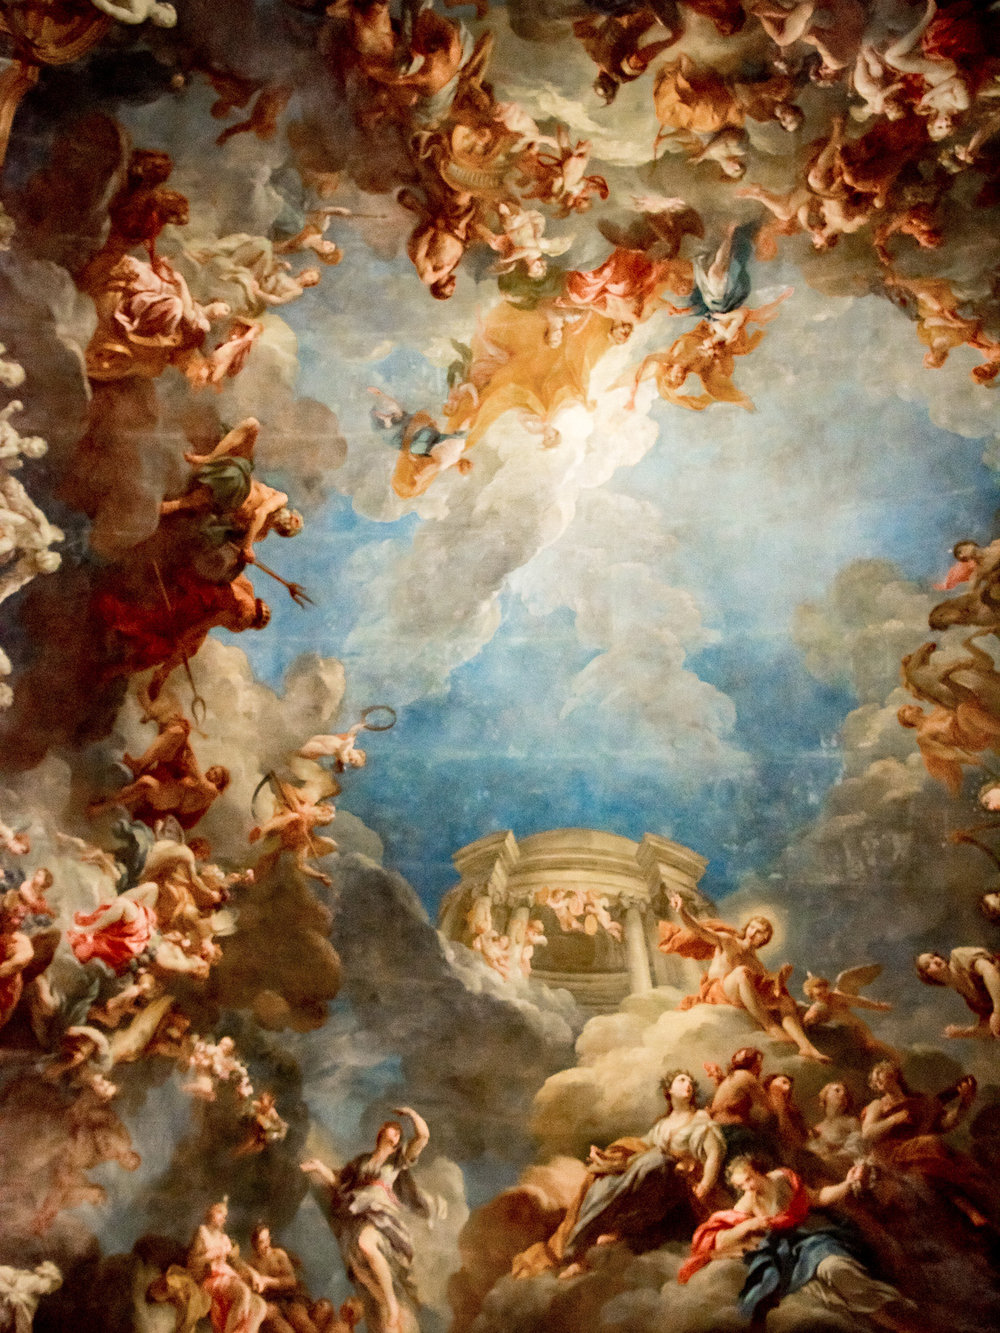 A painting on the palace ceiling in Versailles.